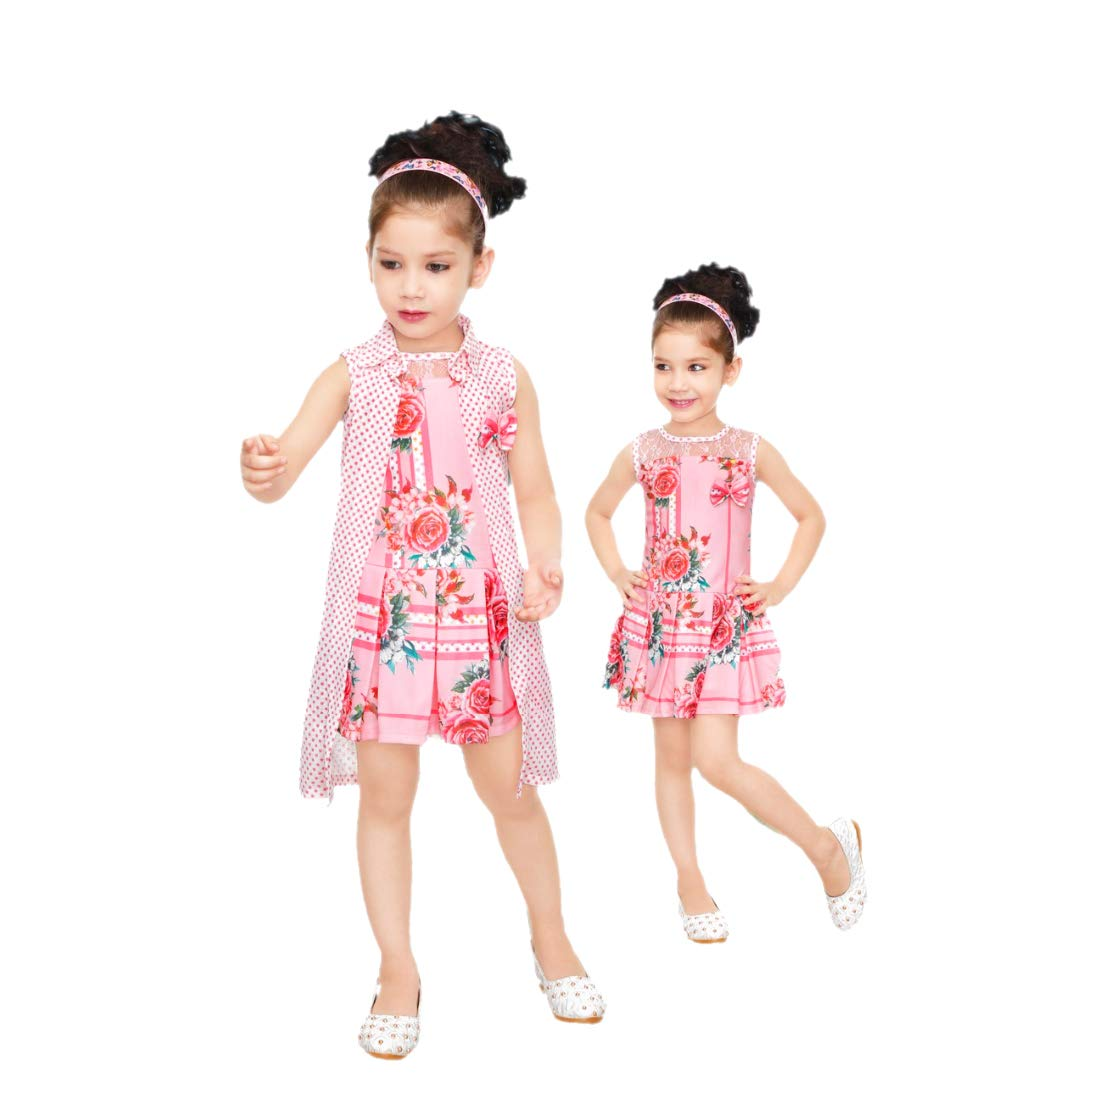 Kids Mandi Floral Kid Girls Dresses, Round Neck Sleeveless Jacket frock for Summer Wear, Casual Wear, Party Wear